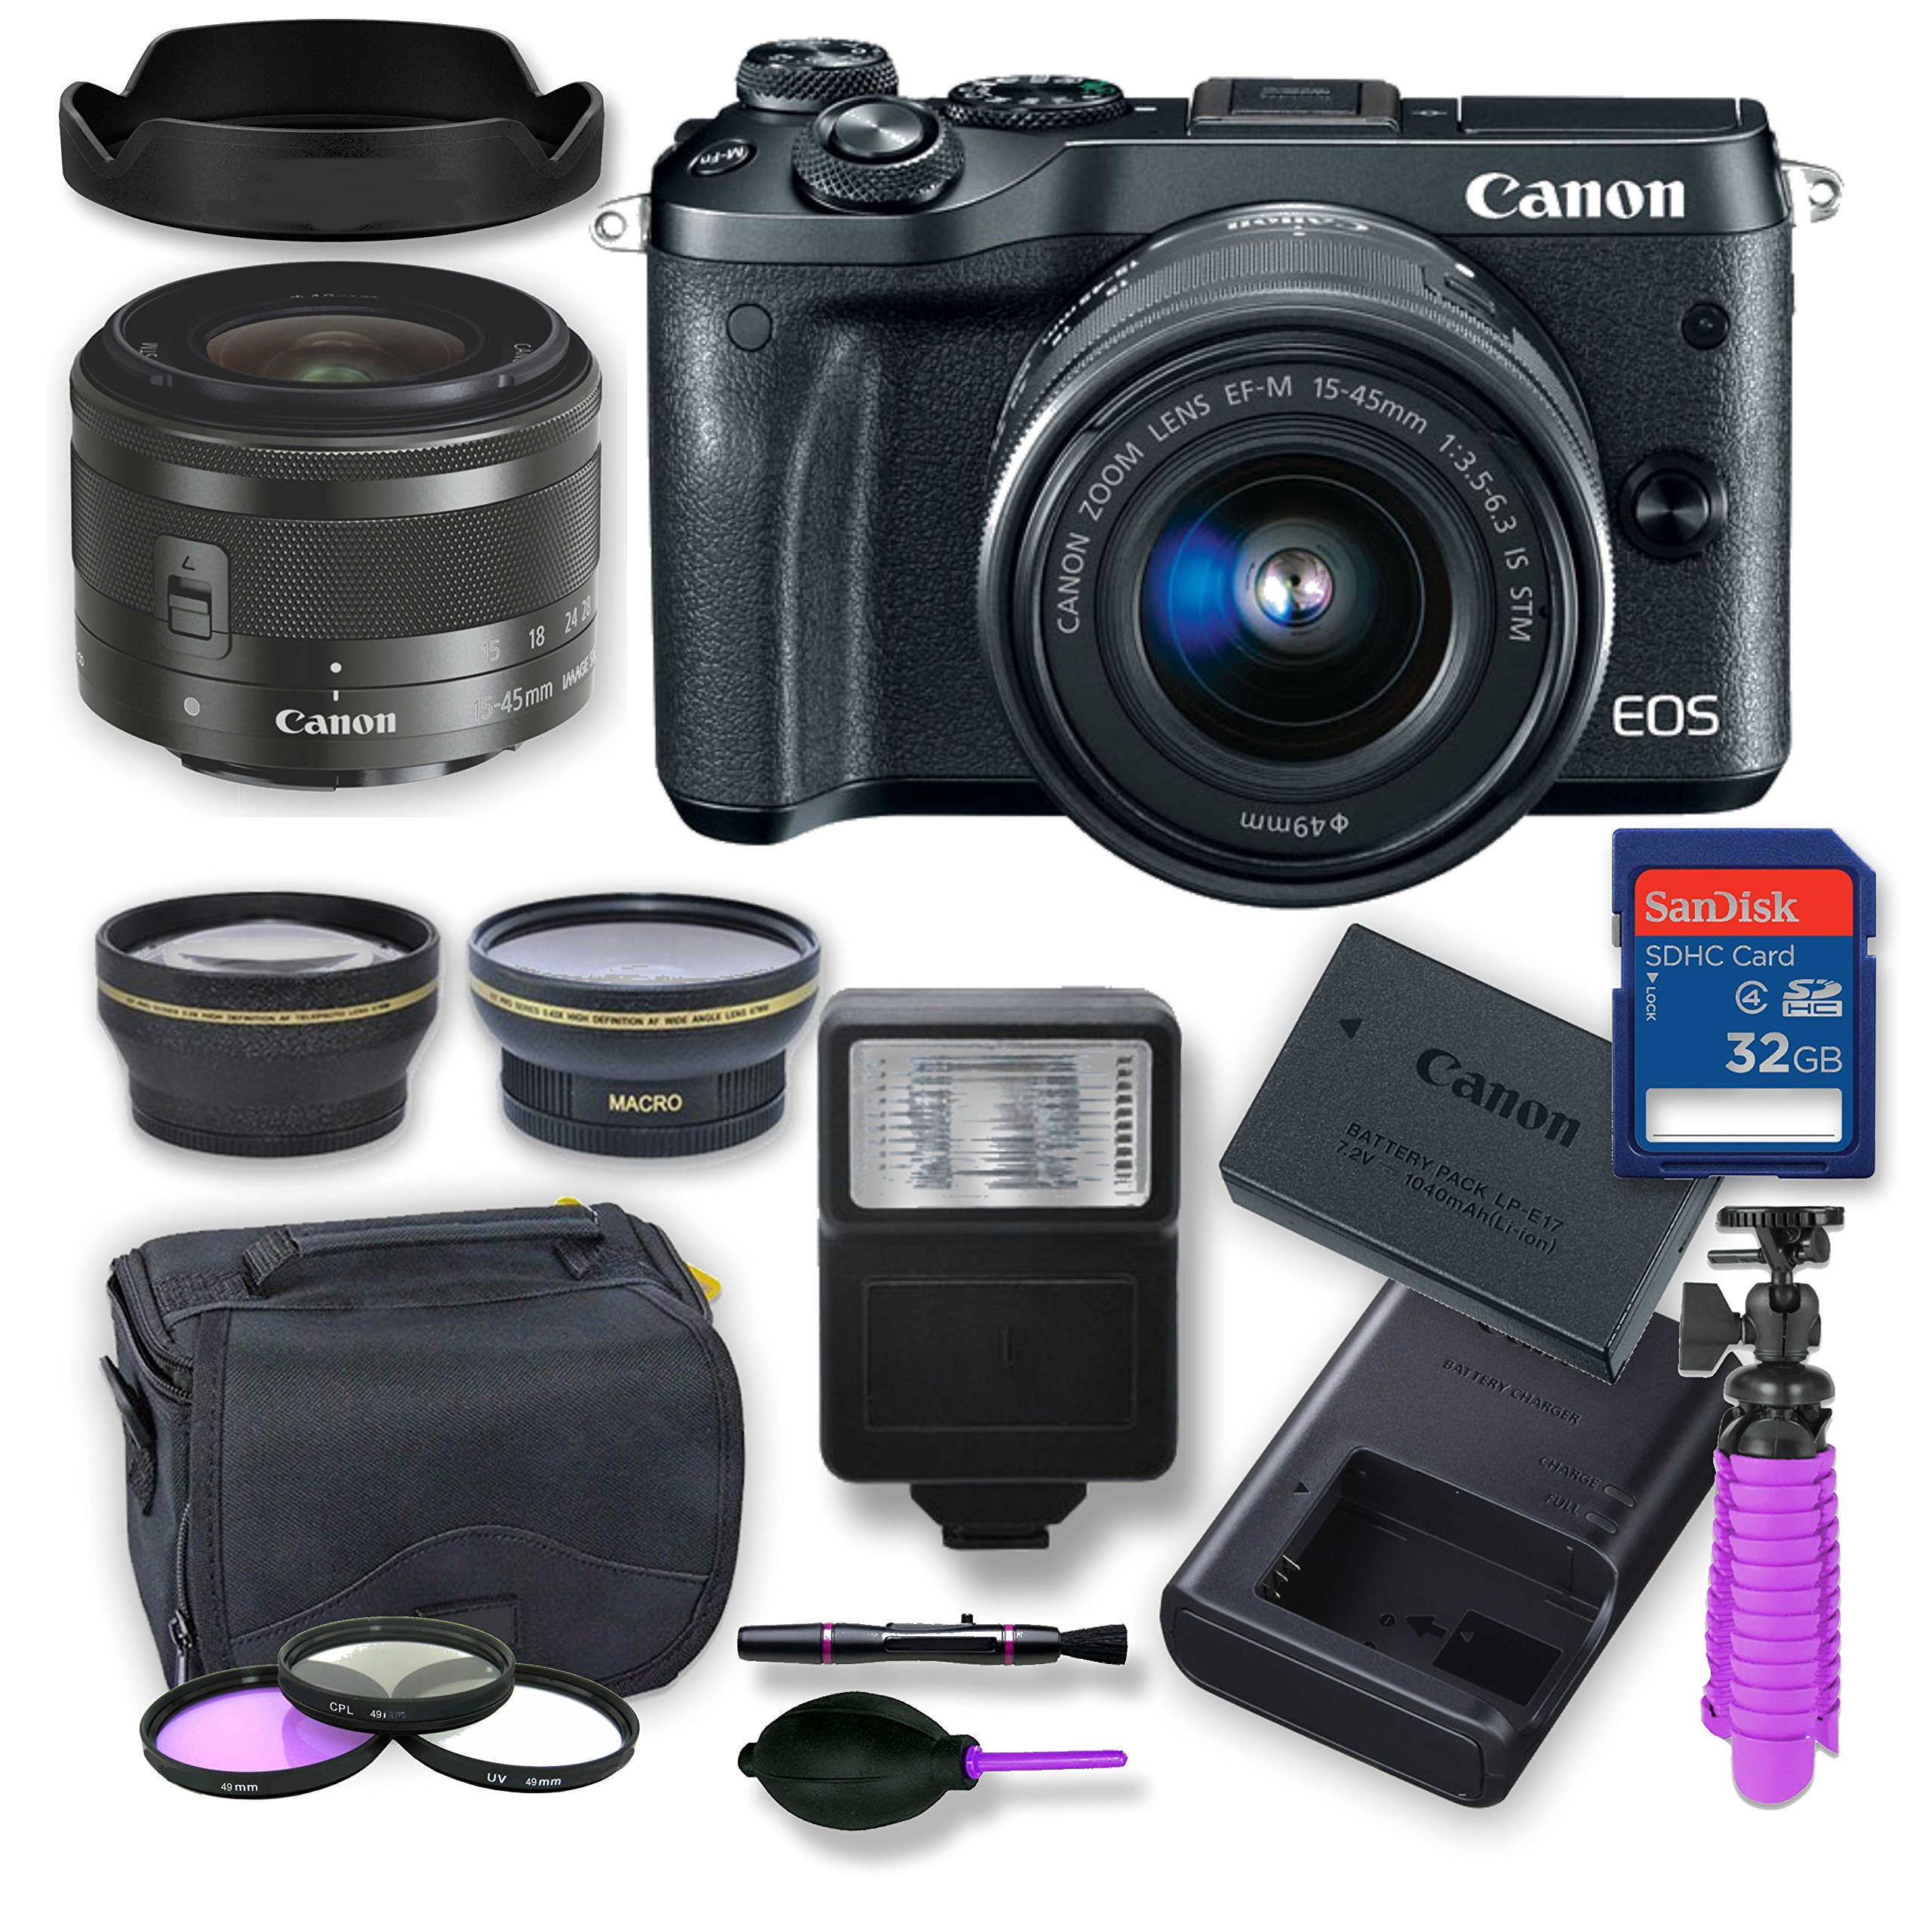 Canon EOS M6 Mirrorless Digital Camera Kit with 15-45 mm Canon Lens + Wide Angle and Telephoto lens, Digital Remote Flash, Canon Battery, 32 gig Memory Card, 3 Filter Kit, Case, Tripod & Cleaning Kit